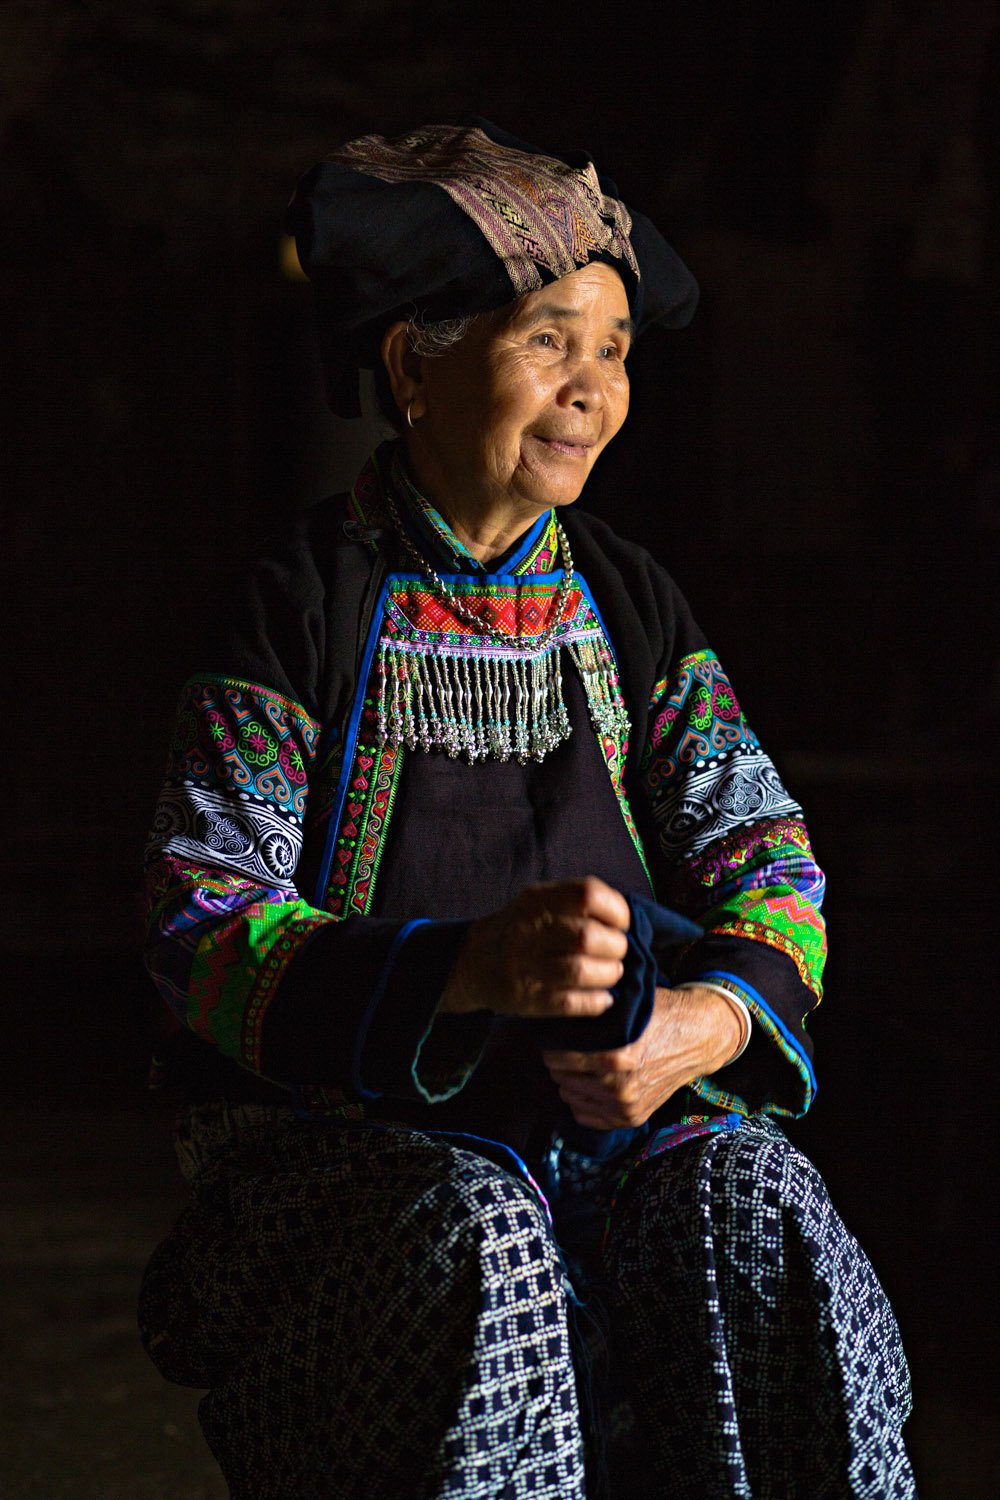 once-he-reaches-a-tribe-rhahn-spends-time-listening-to-the-elders-stories-and-capturing-where-they-live.jpg